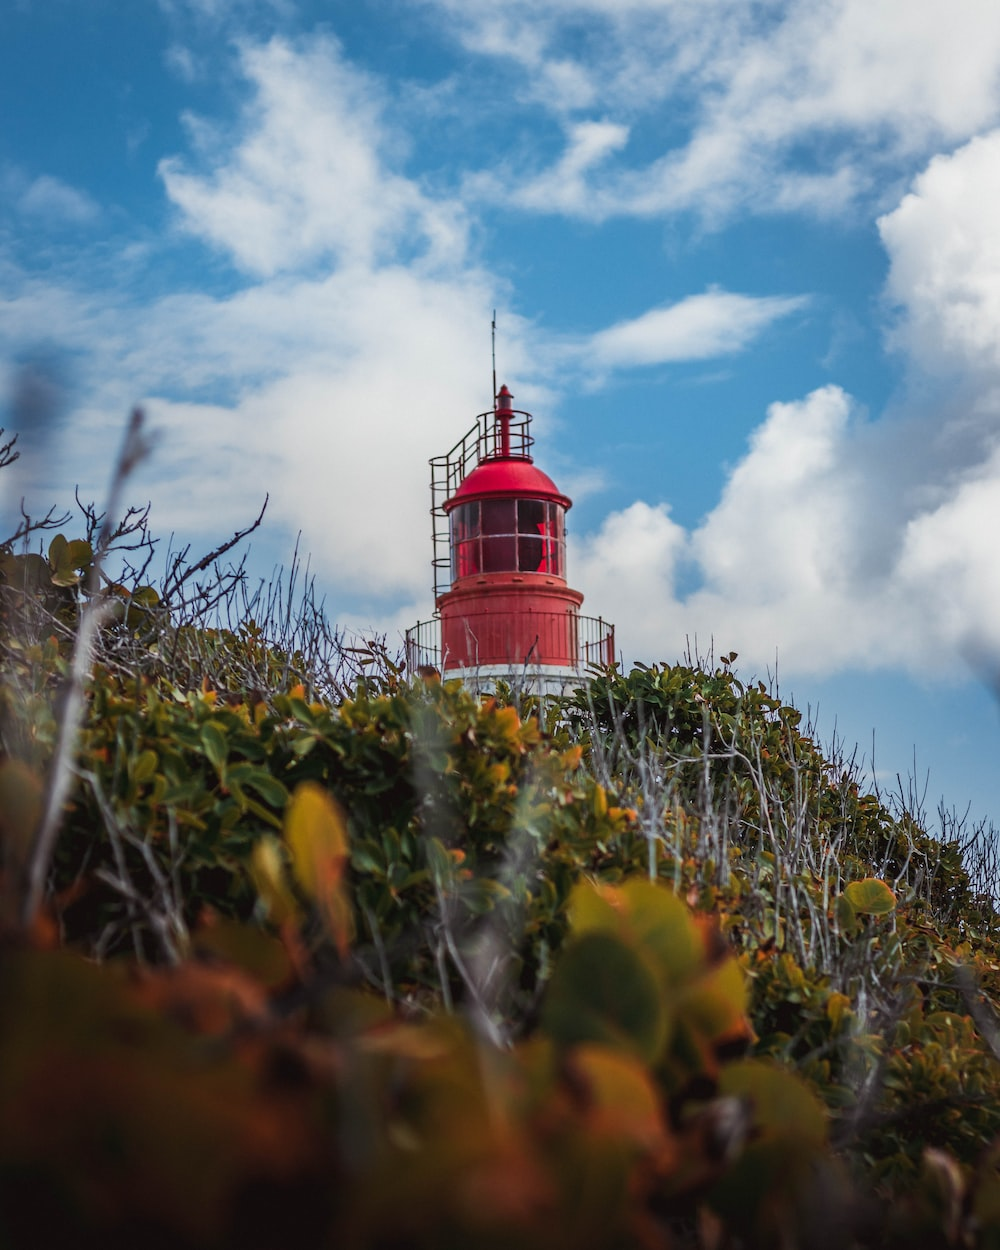 low-angle photography of red tower under blue sky and white clouds